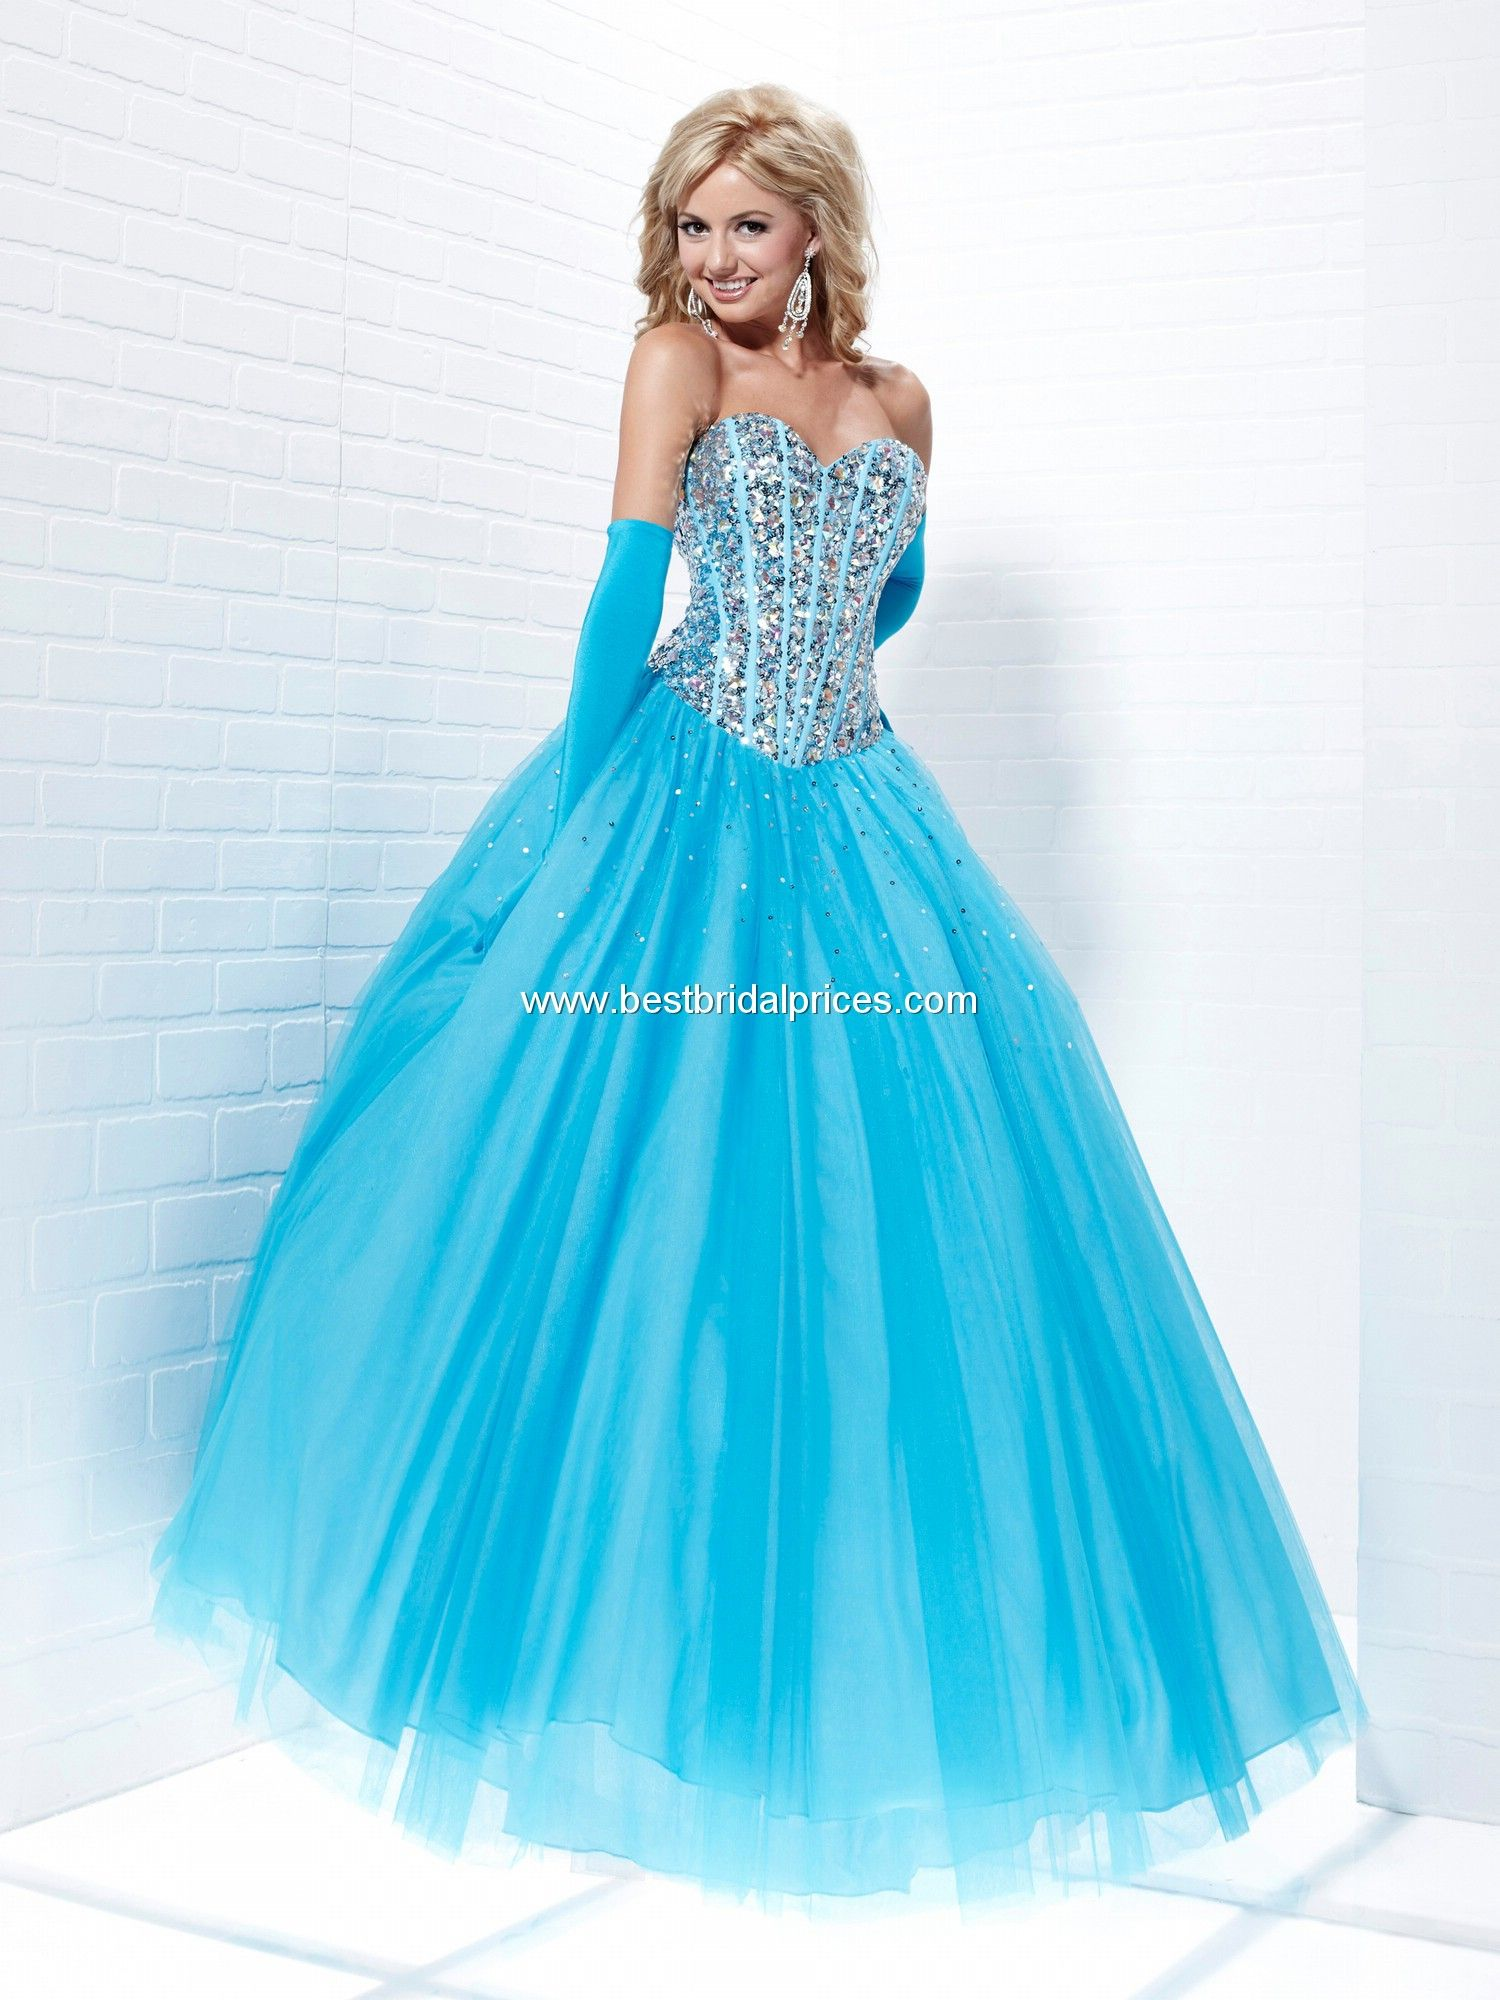 Image detail for gown sweetheart neck floorlength prom dresses